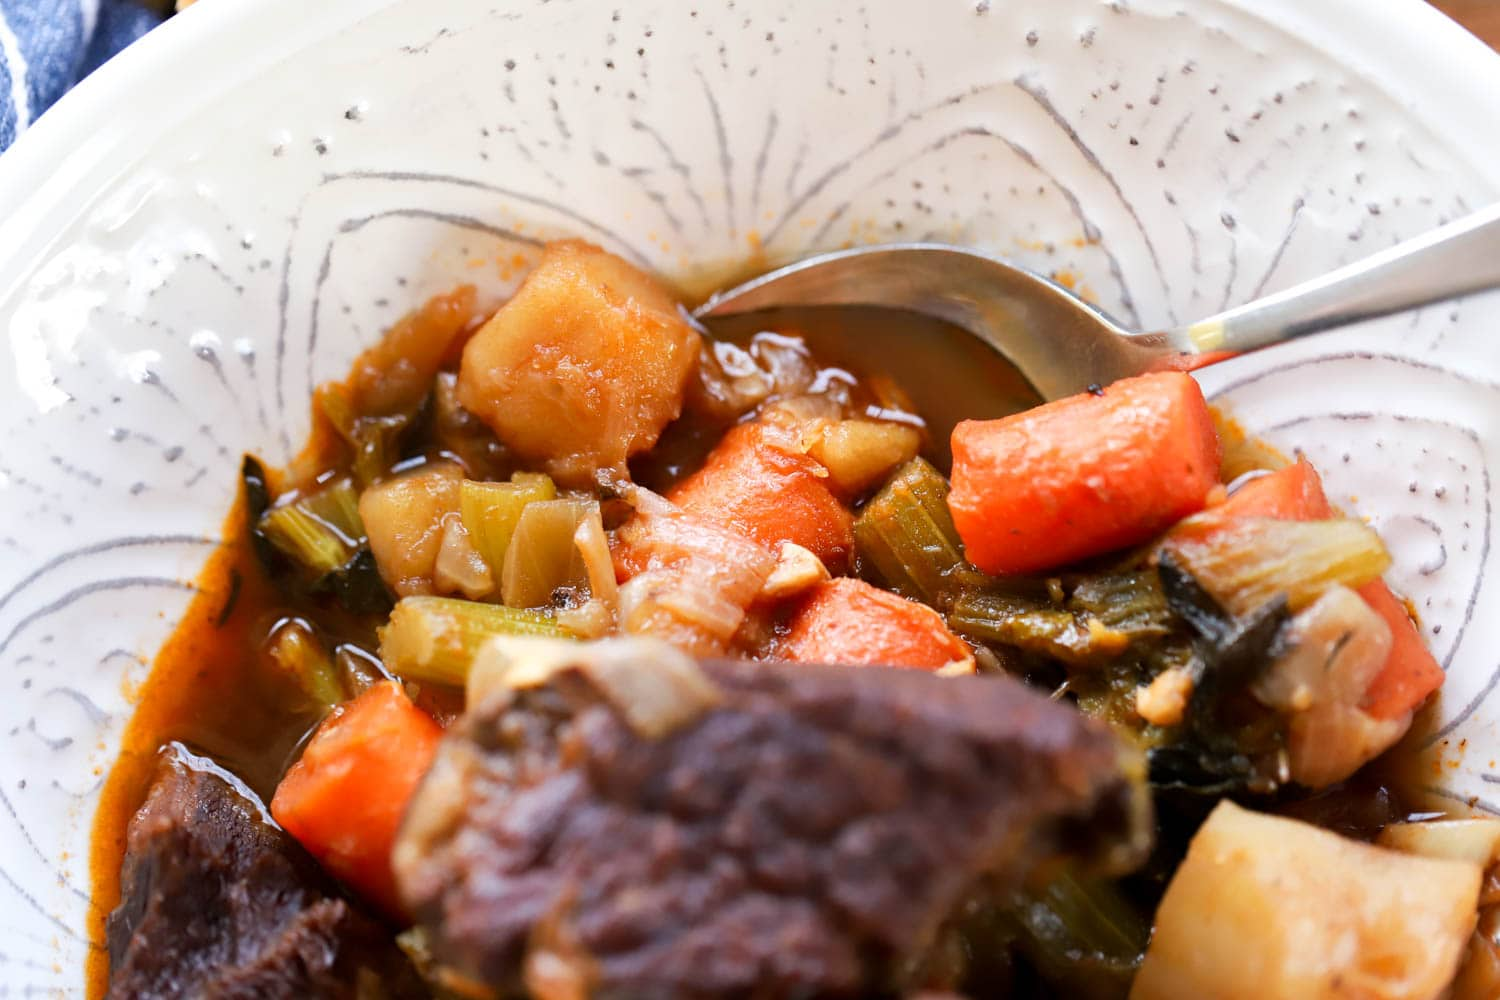 spoon in broth of beef stew with carrots and celery in a white bowl.